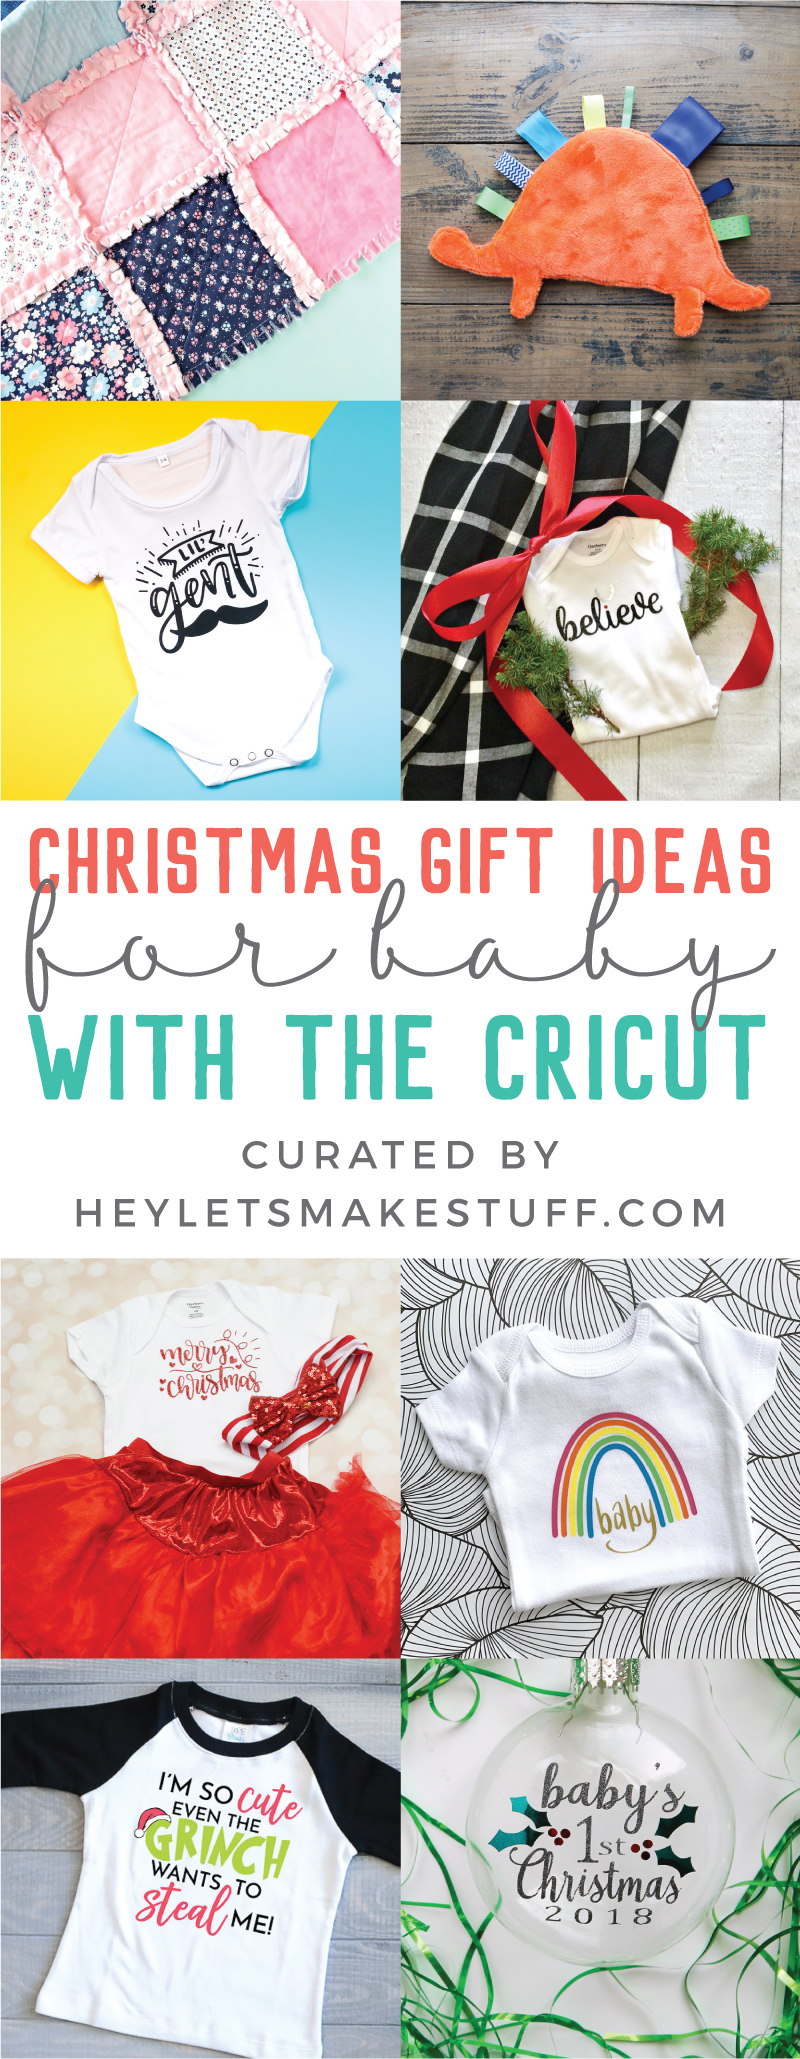 This collection of Christmas Gift Ideas for Baby with the Cricut has plenty of cute, trendy and fun gift ideas for the littlest people in your life. 'Tis the season of creating! via @heyletsmakestuf